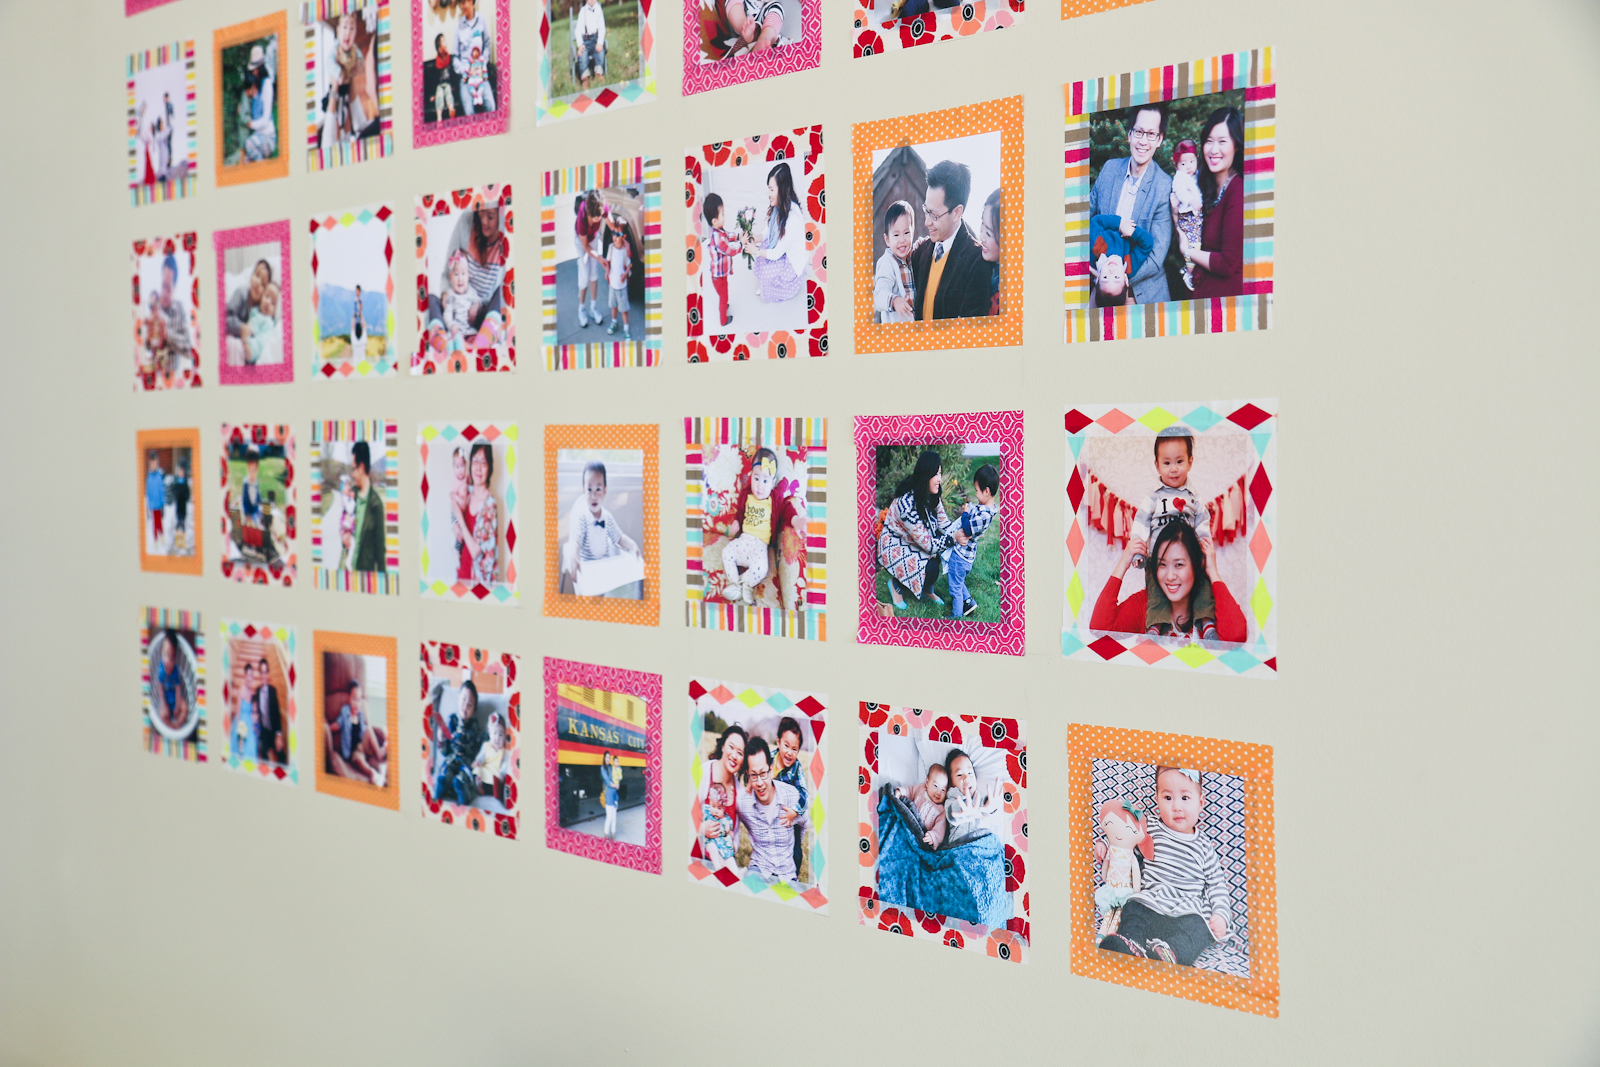 DIY Instagram Wall Art with Washi Tape